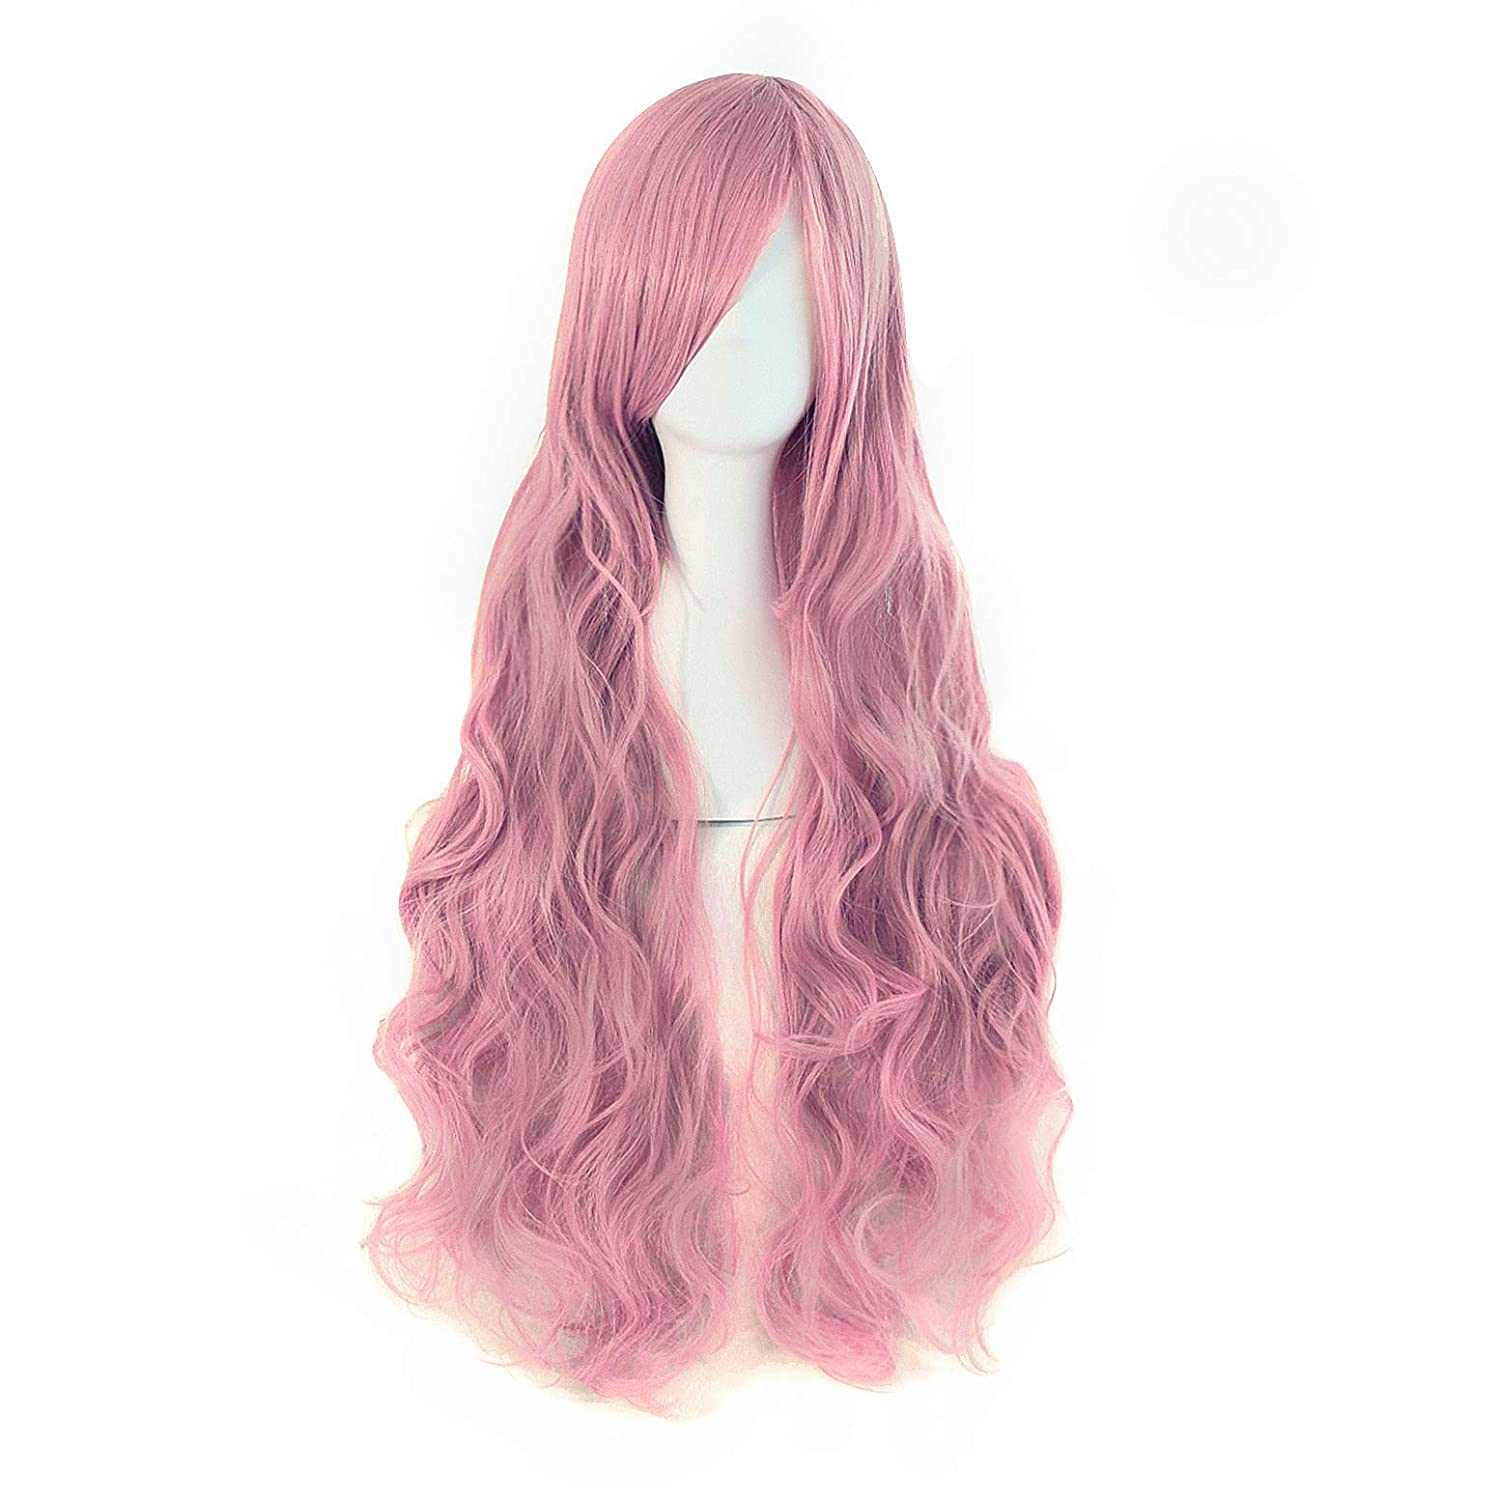 Wig Cap High Standard In Quality And Hygiene Synthetic None-lacewigs Golden Blonde Short 30cm Anime Cosplay Fancy Party Full Wig